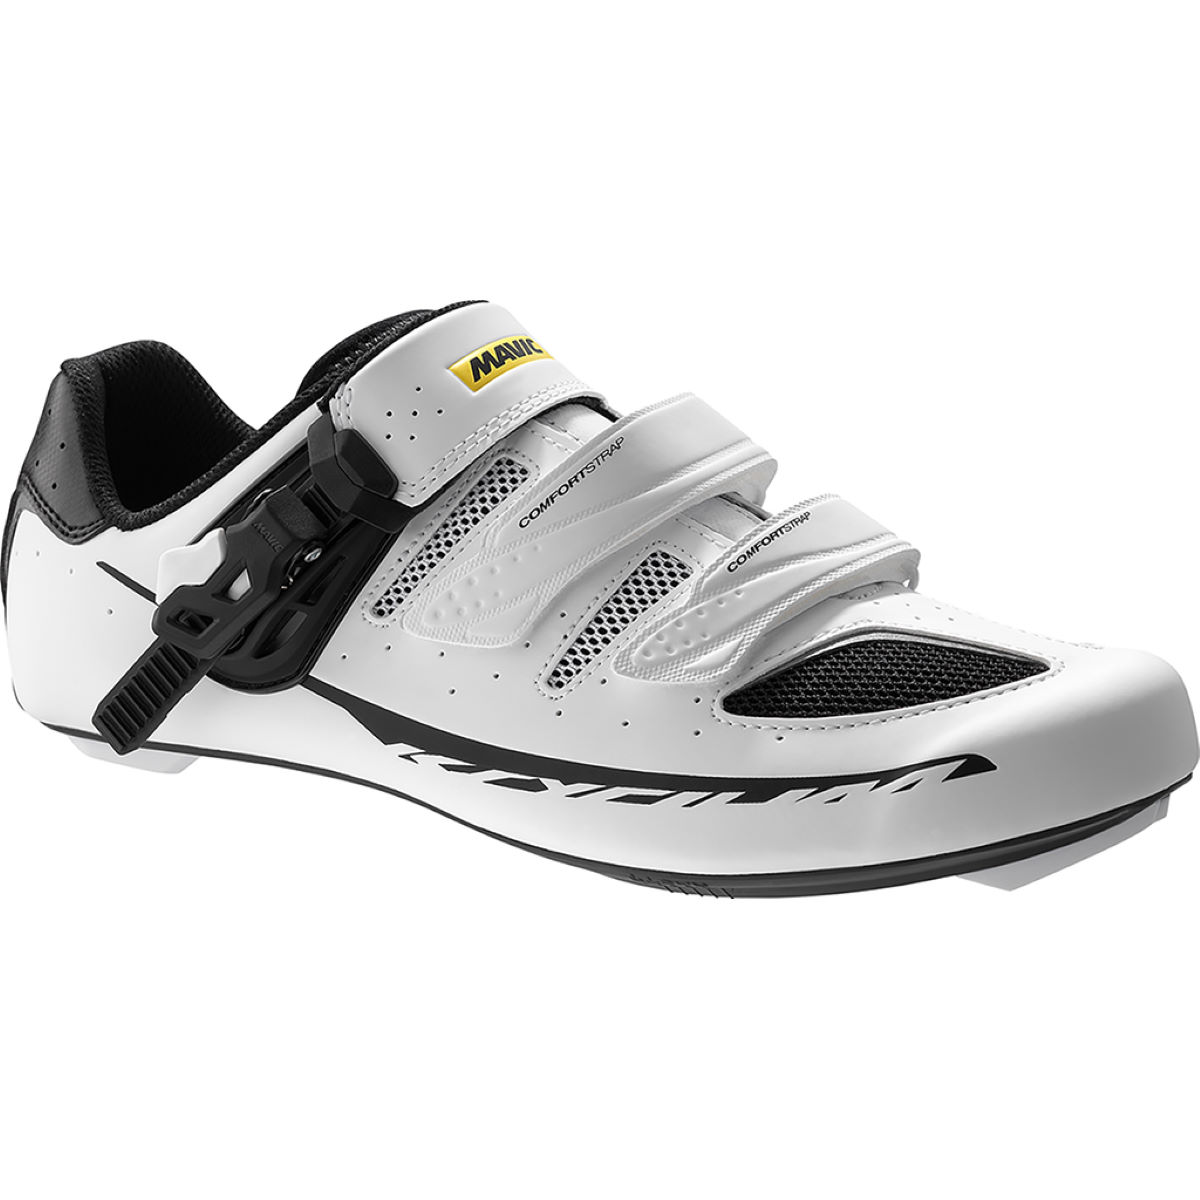 Chaussures Mavic Ksyrium Elite Maxi Fit II - 13 UK Blanc Chaussures de route